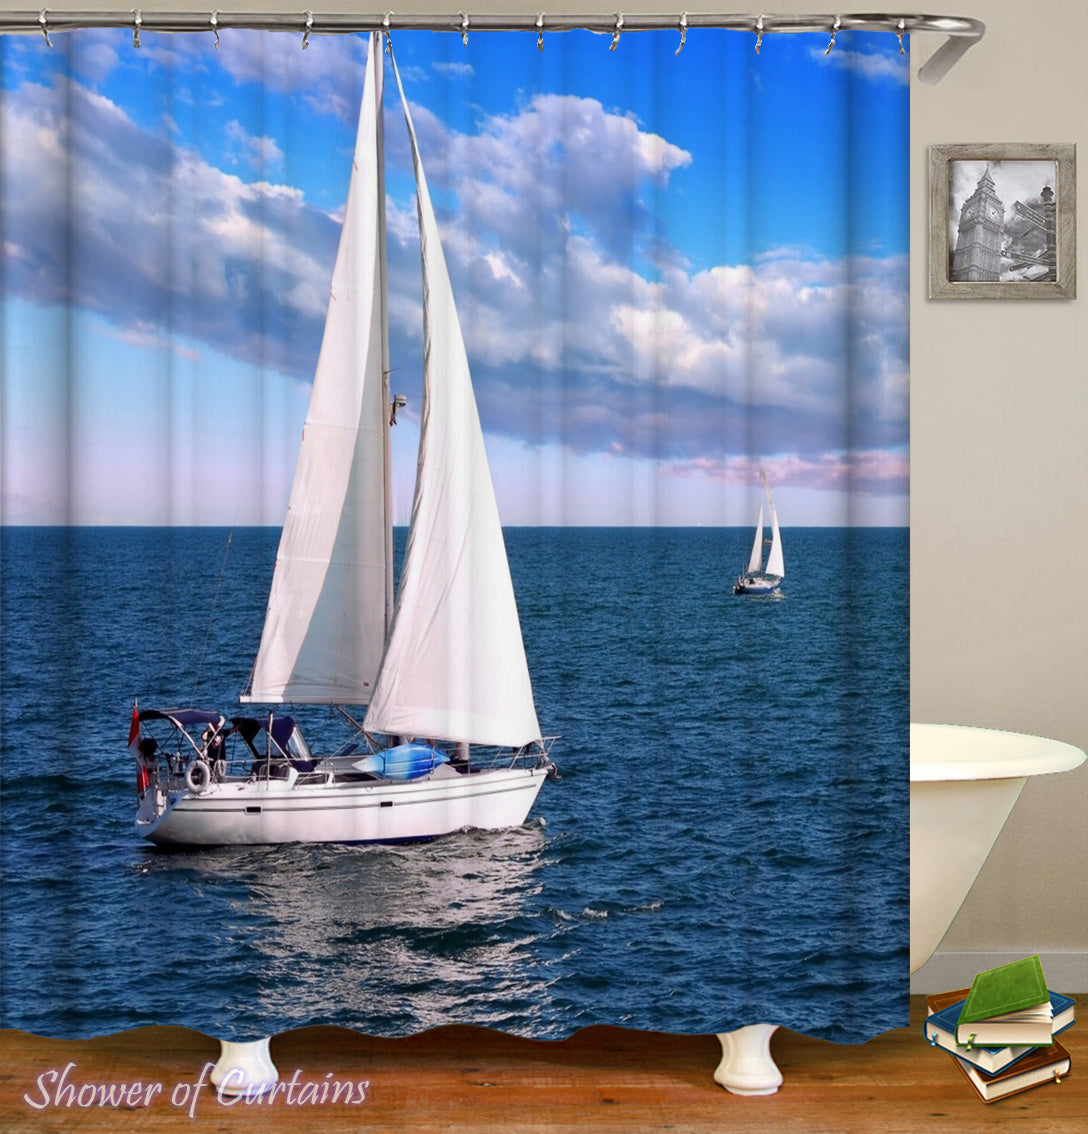 Sailboat Shower Curtain At Open Sea